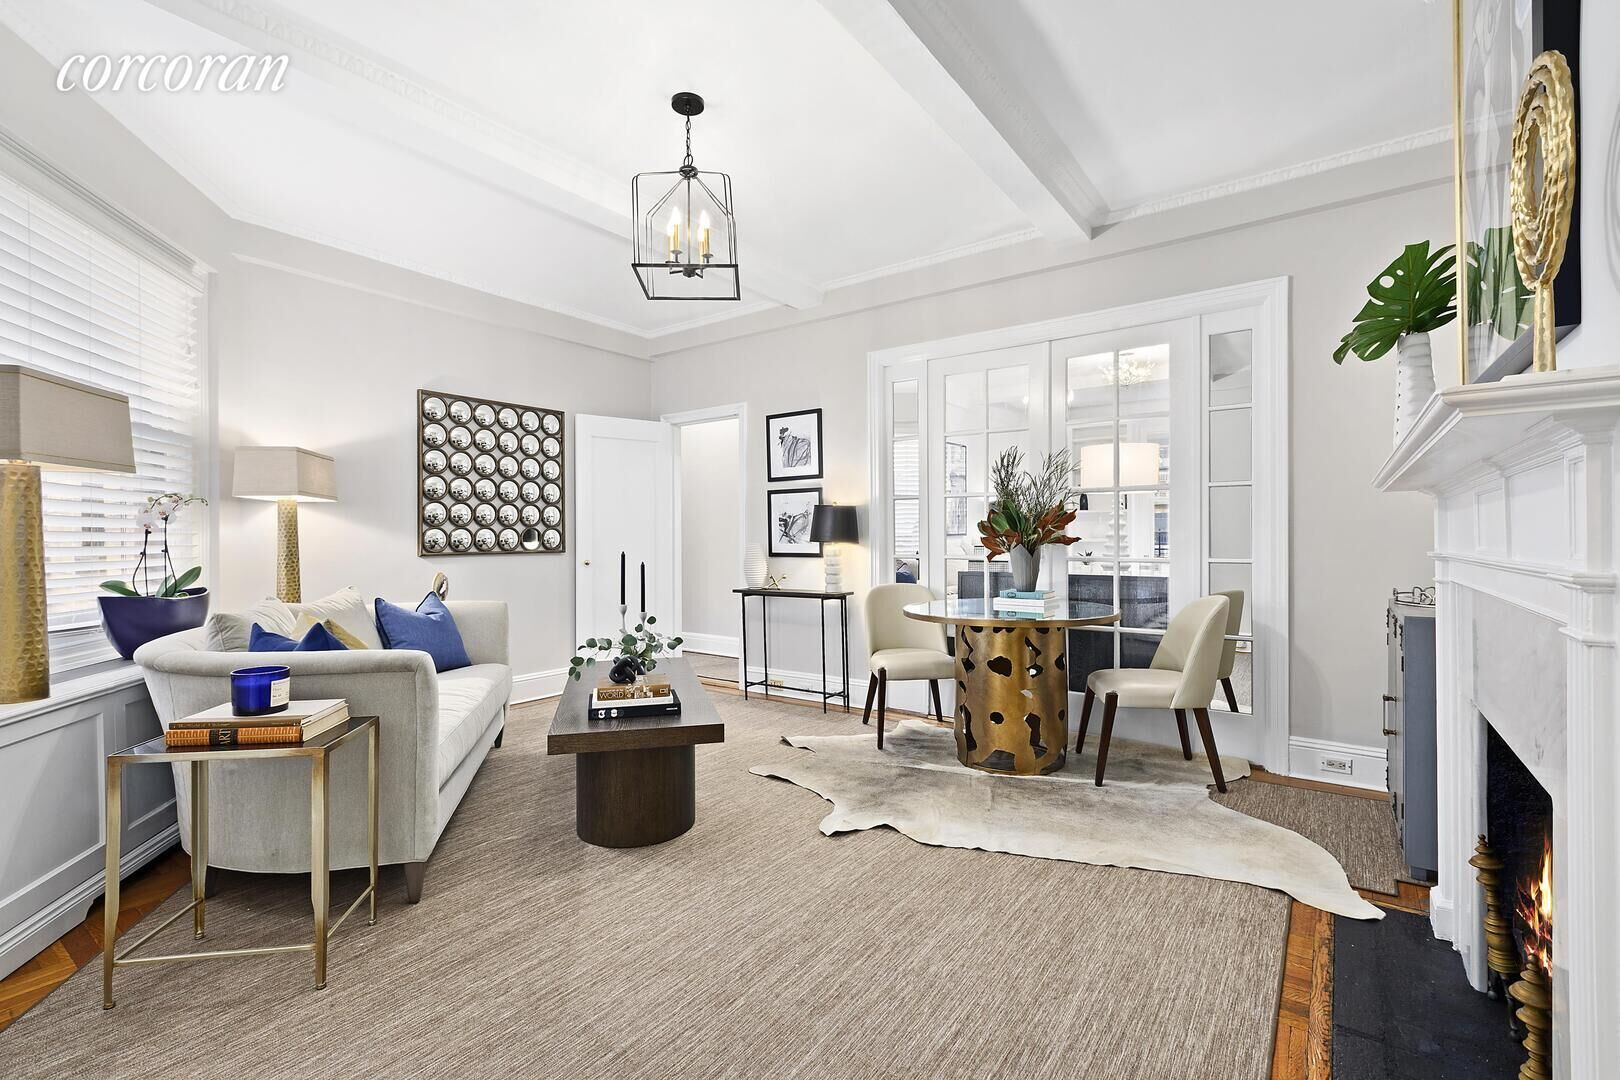 Apartment for sale at 111 East 75th Street, Apt 5B